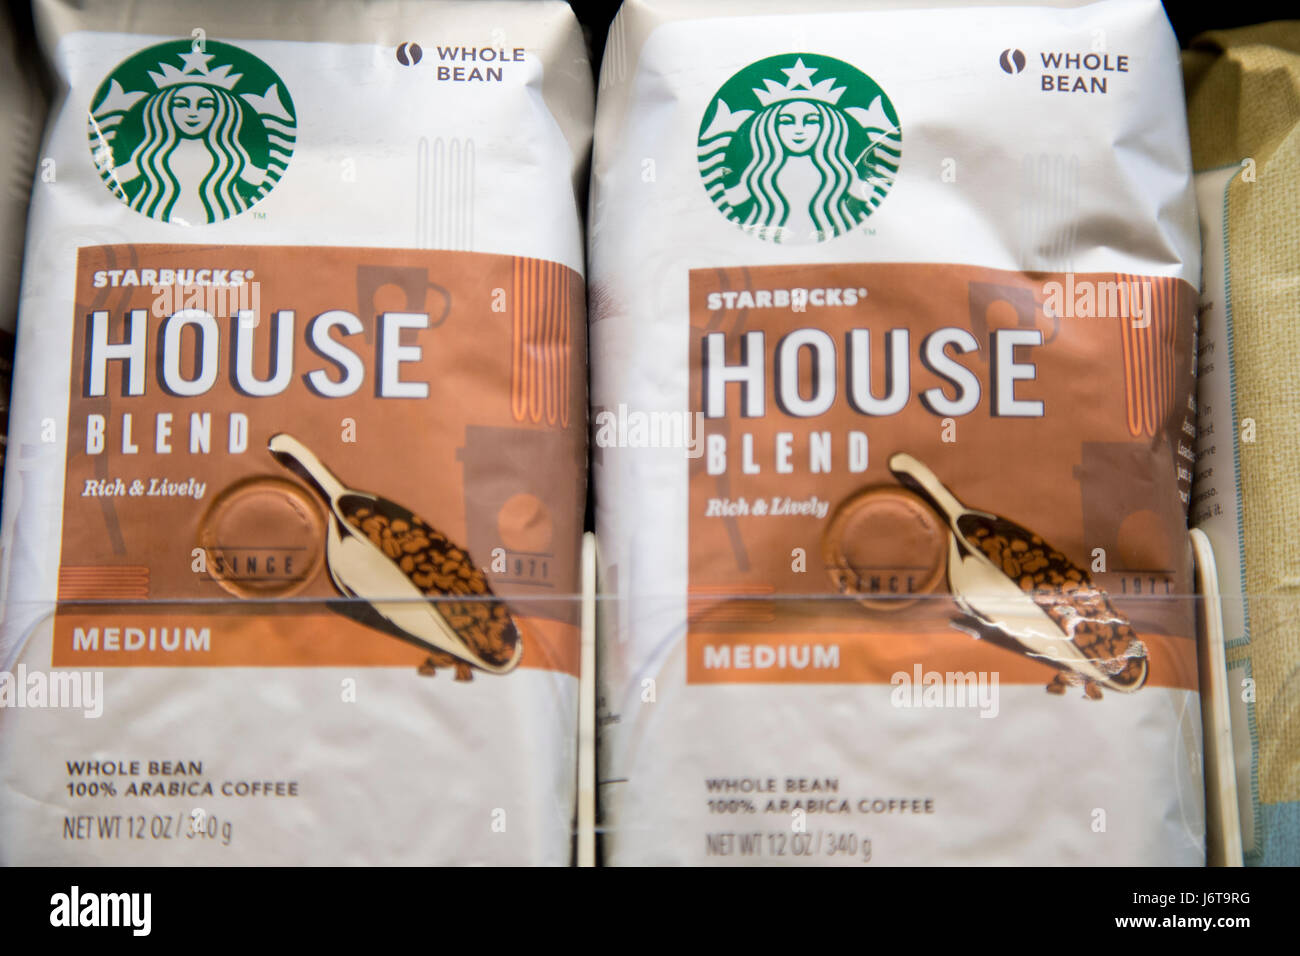 bags of Starbucks brand House Blend whole bean coffee on the shelf of a grocery store - Stock Image